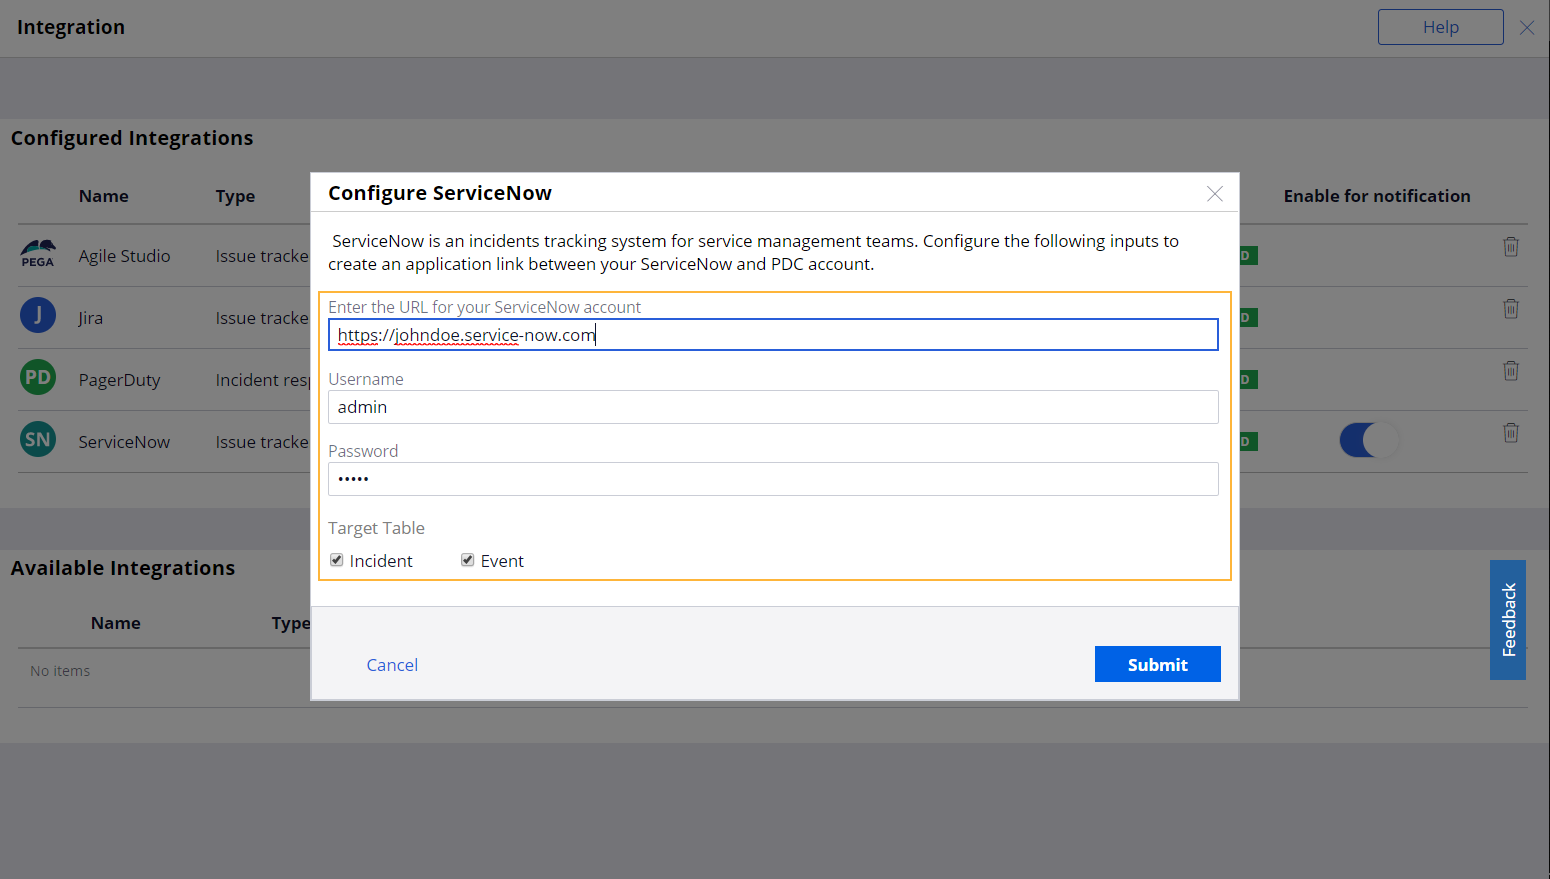 """Configure ServiceNow window with an example configuration of ServiceNow integration"""